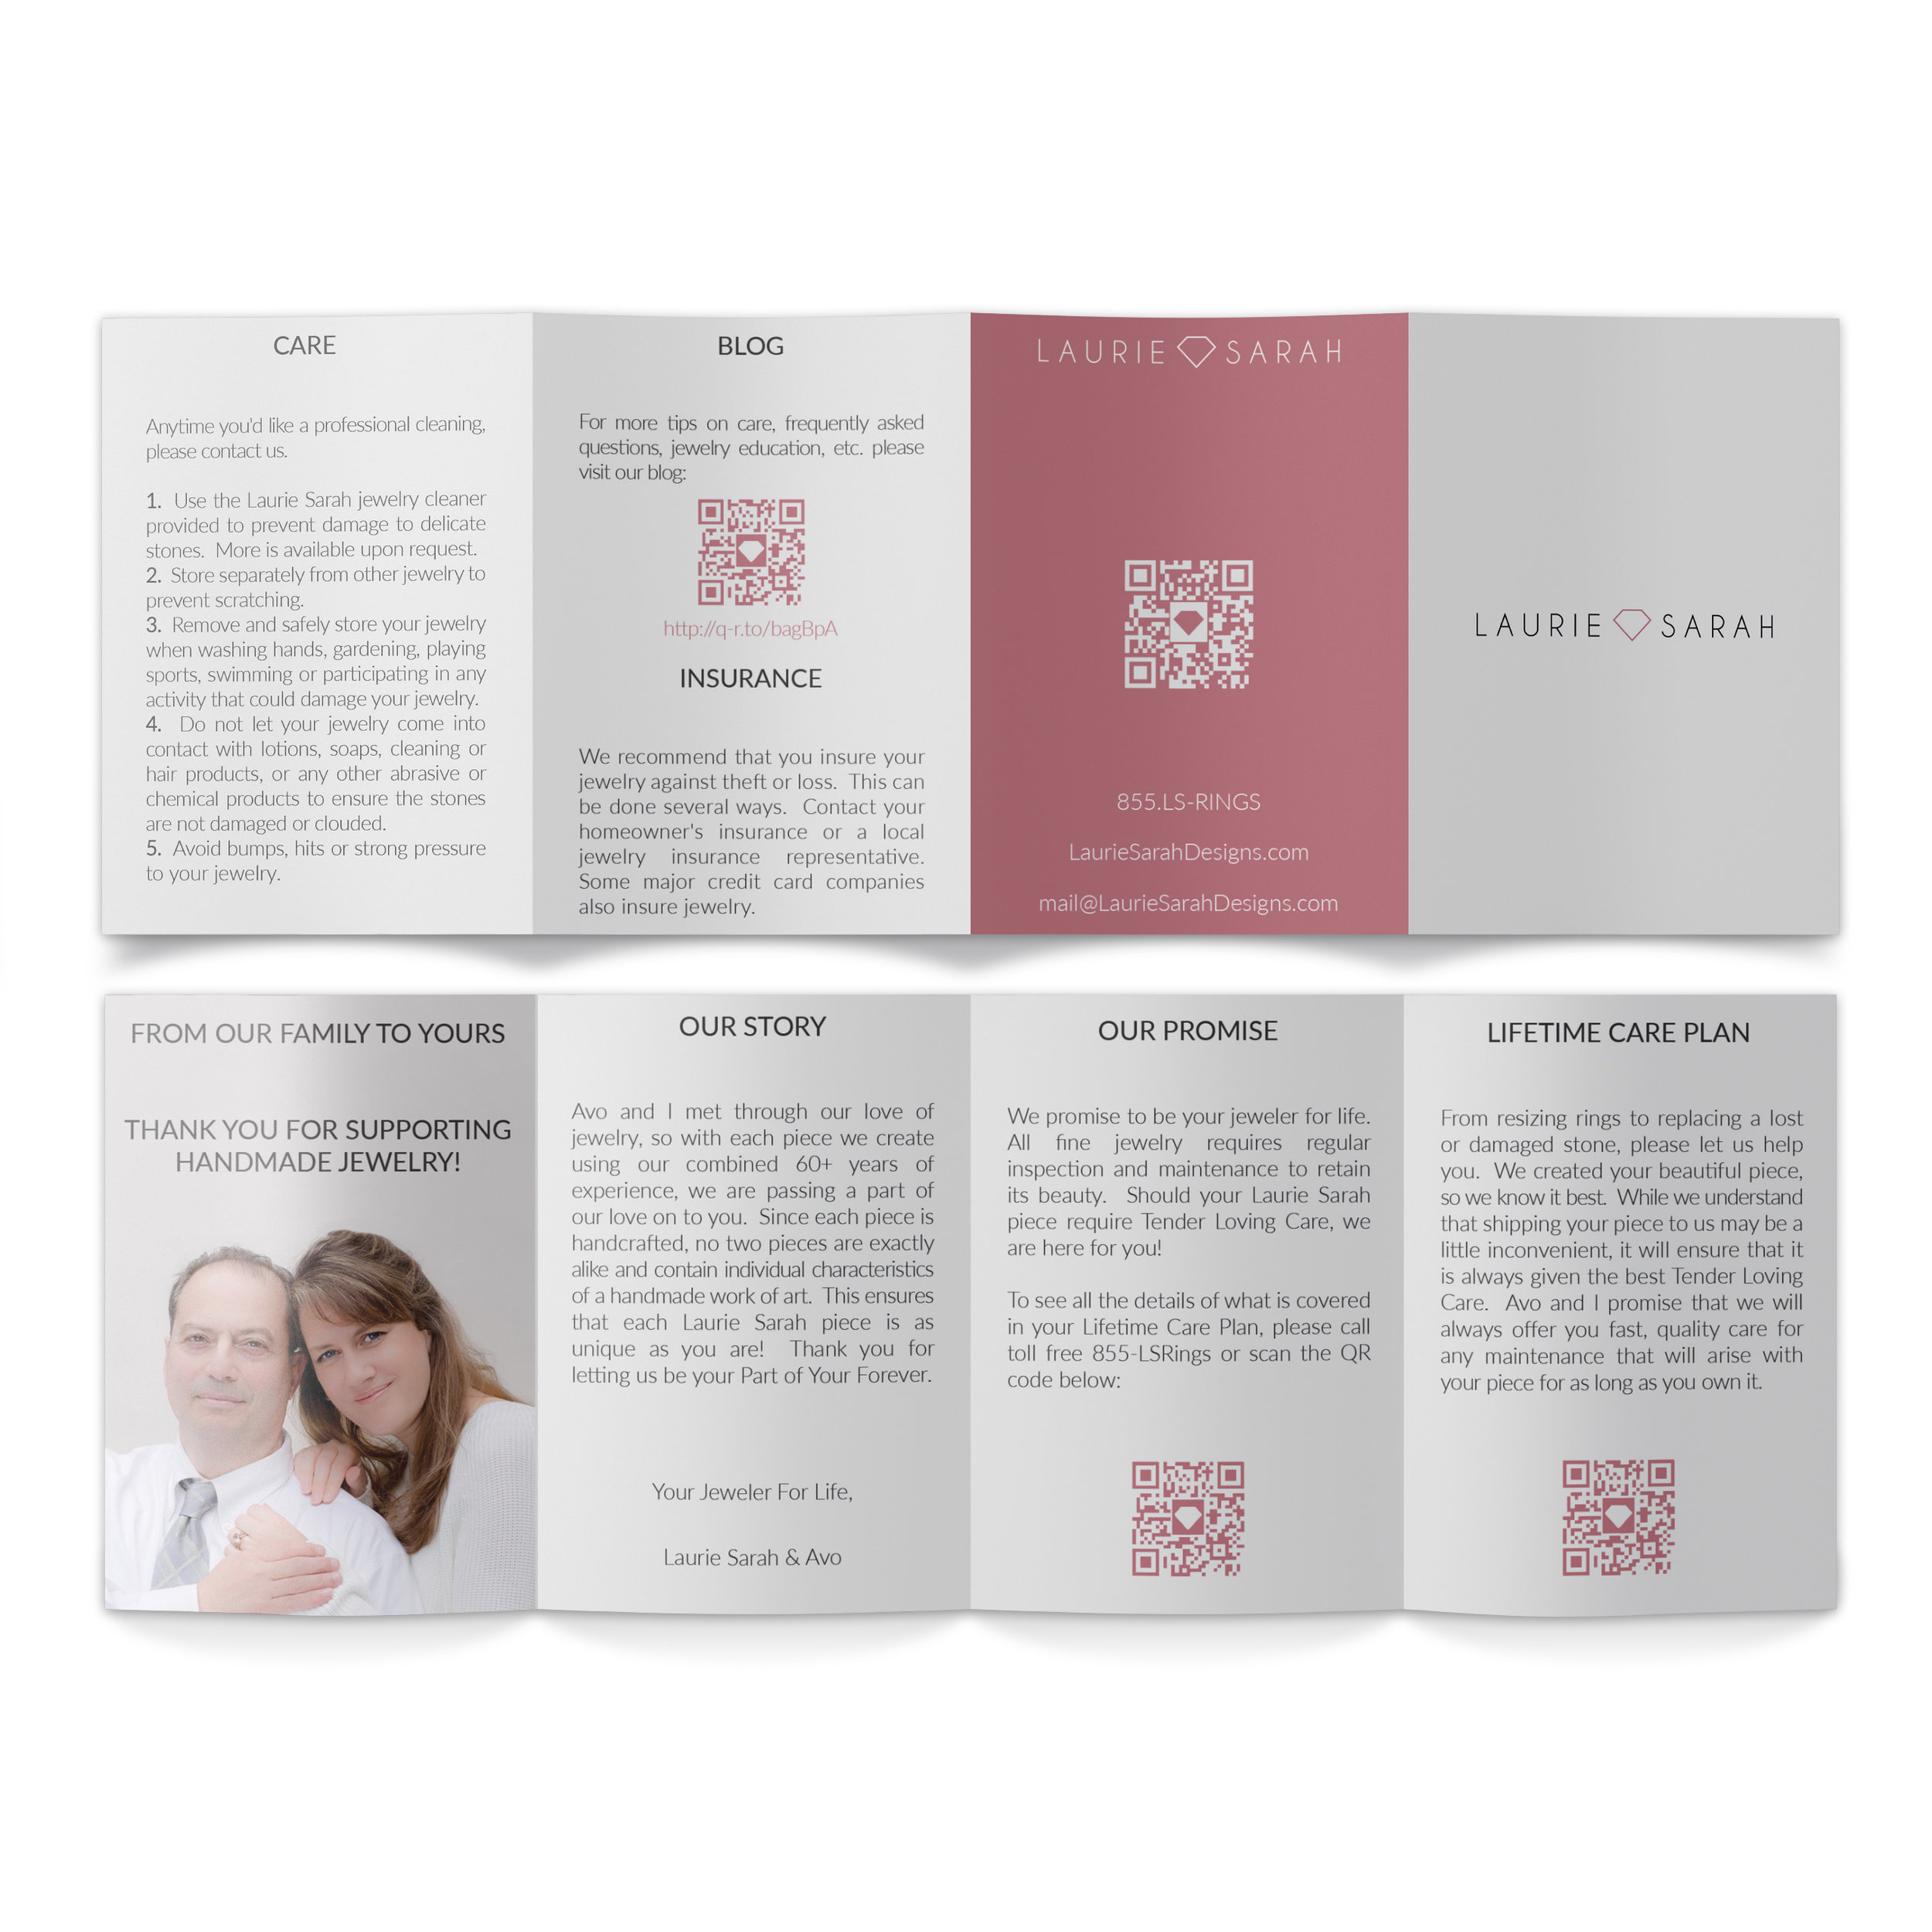 laurie-sarah-info-pamphlet.jpg